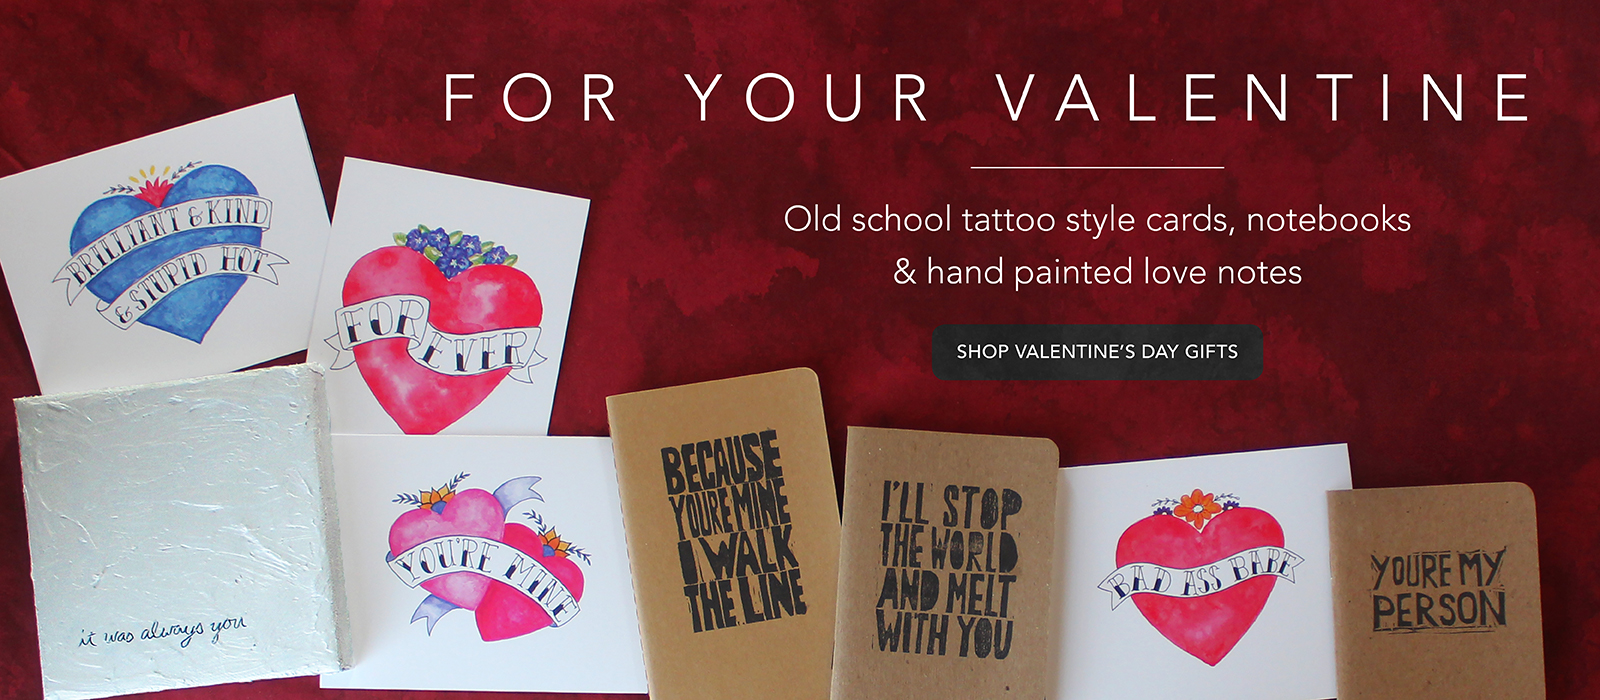 Romantic cards, notebooks and love note paintings for Your Valentine by messy bed studio